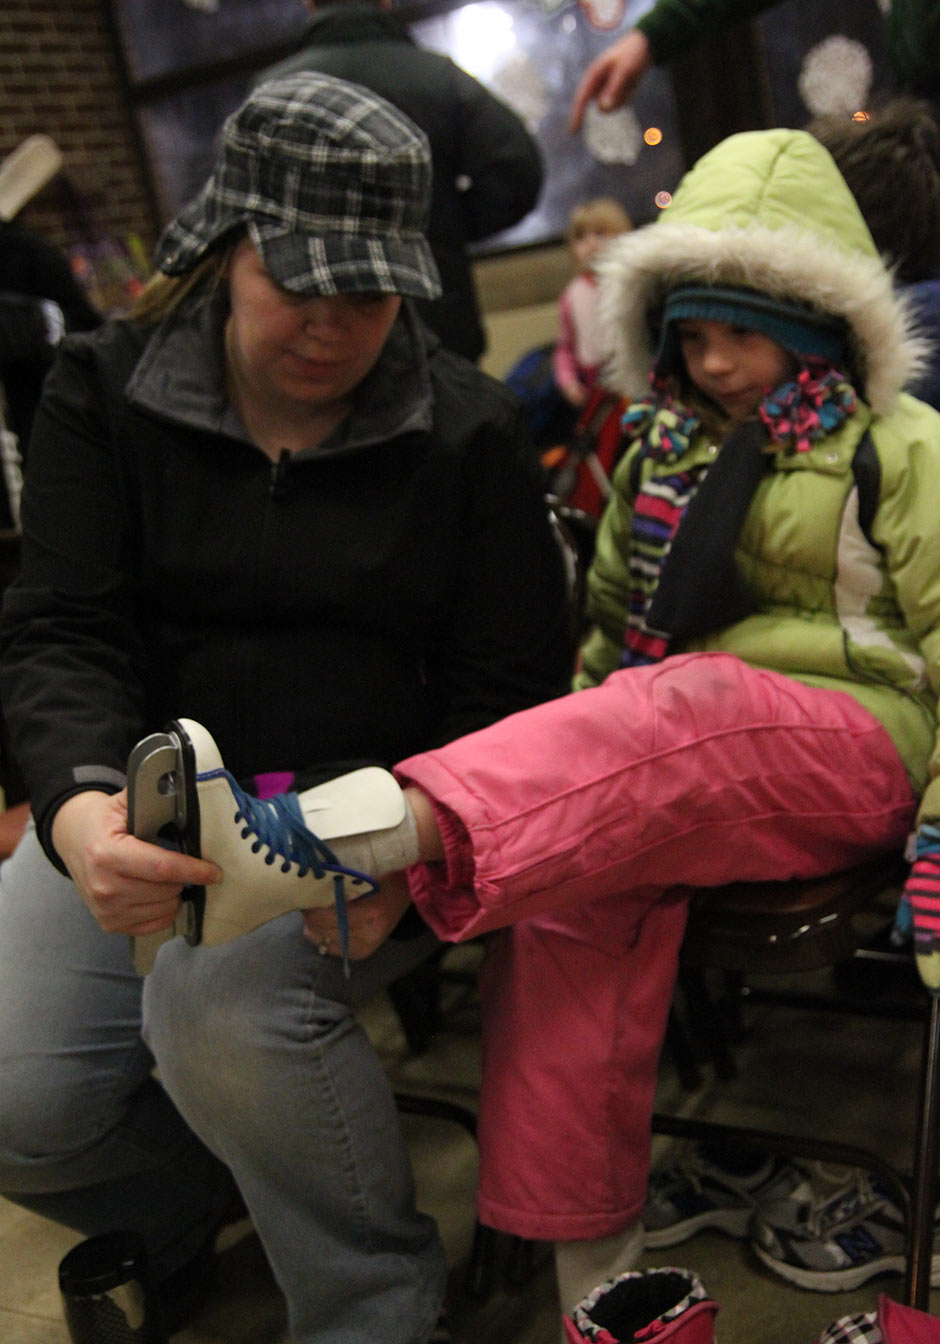 A mom helps her daughter put on skates before they head out to the ice.